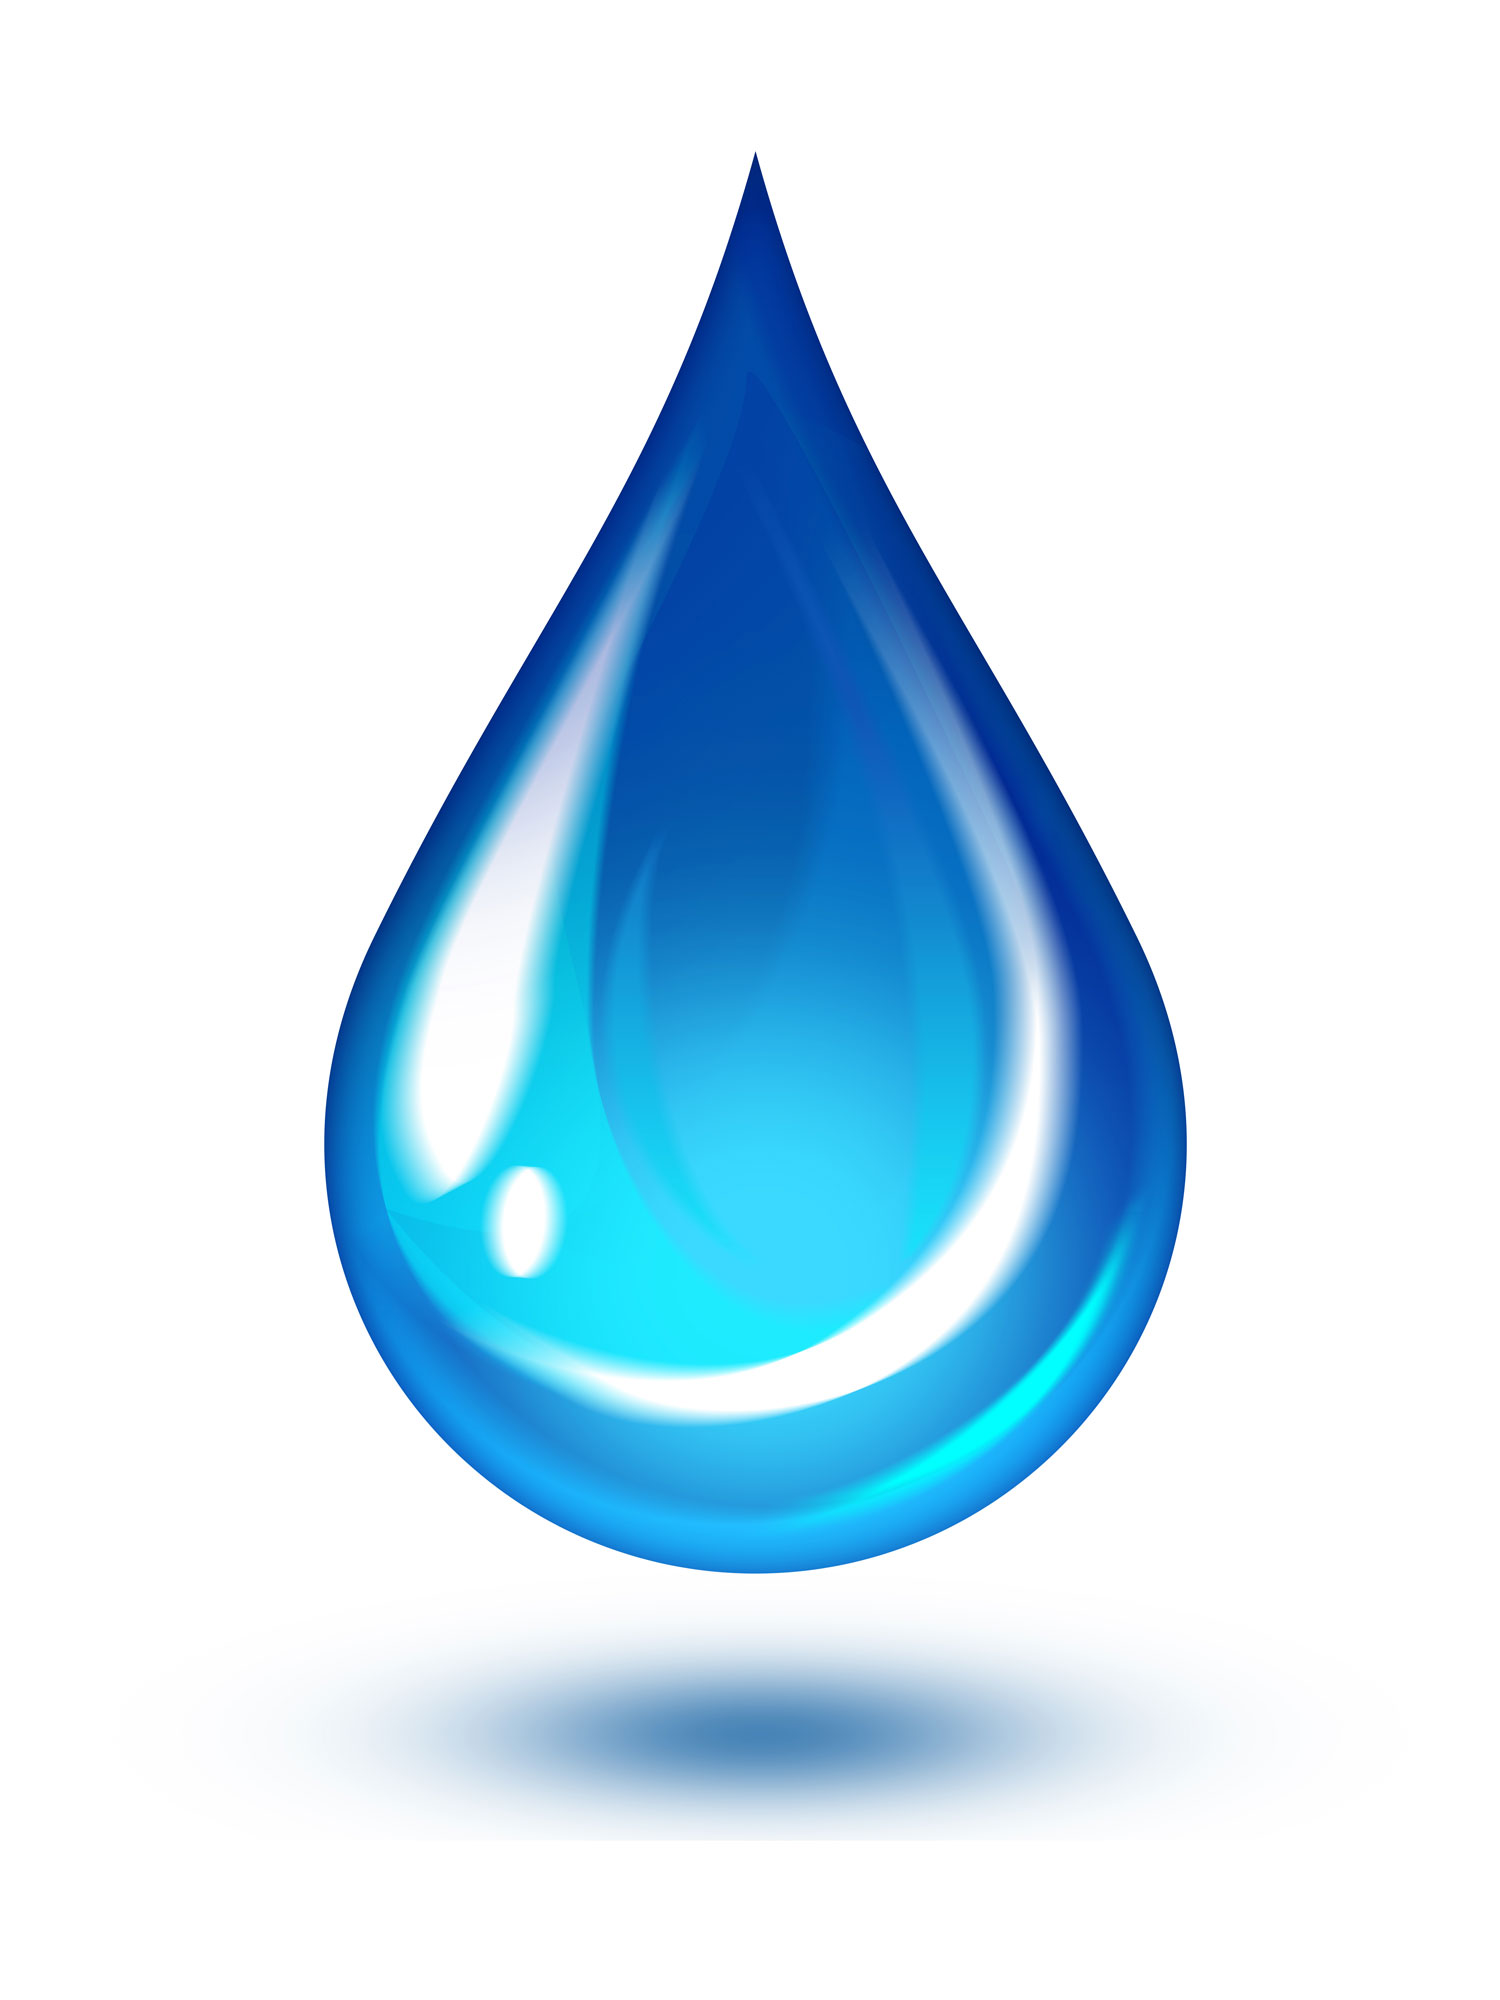 Water Droplets clipart precious #3